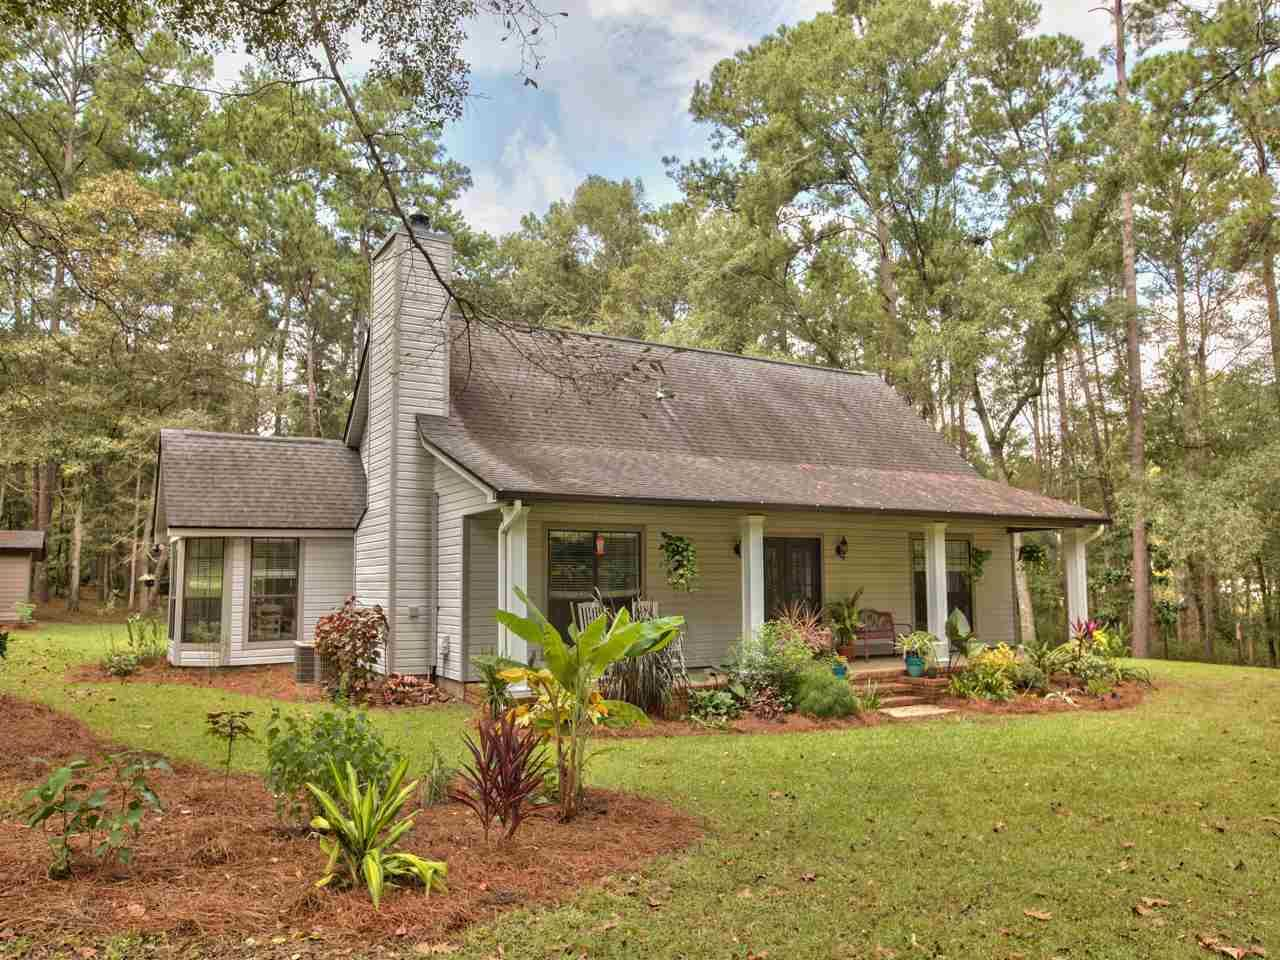 Photo of 4642 Amber Vally Drive, TALLAHASSEE, FL 32312 (MLS # 324116)